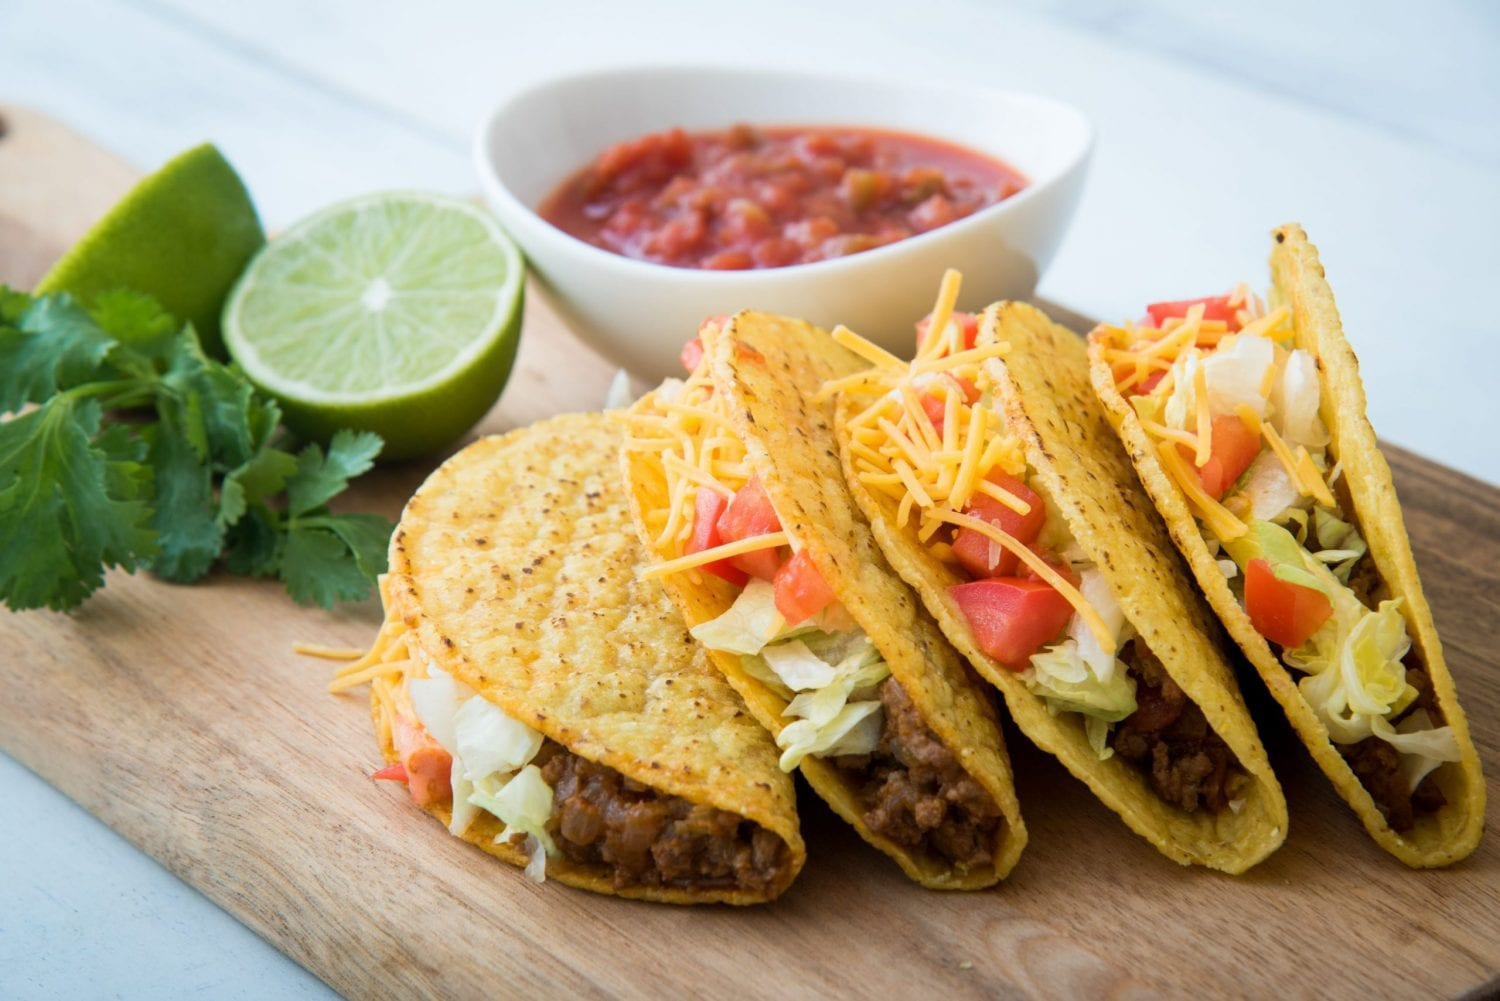 4 cannabis infused tacos with limes and salsa in the background